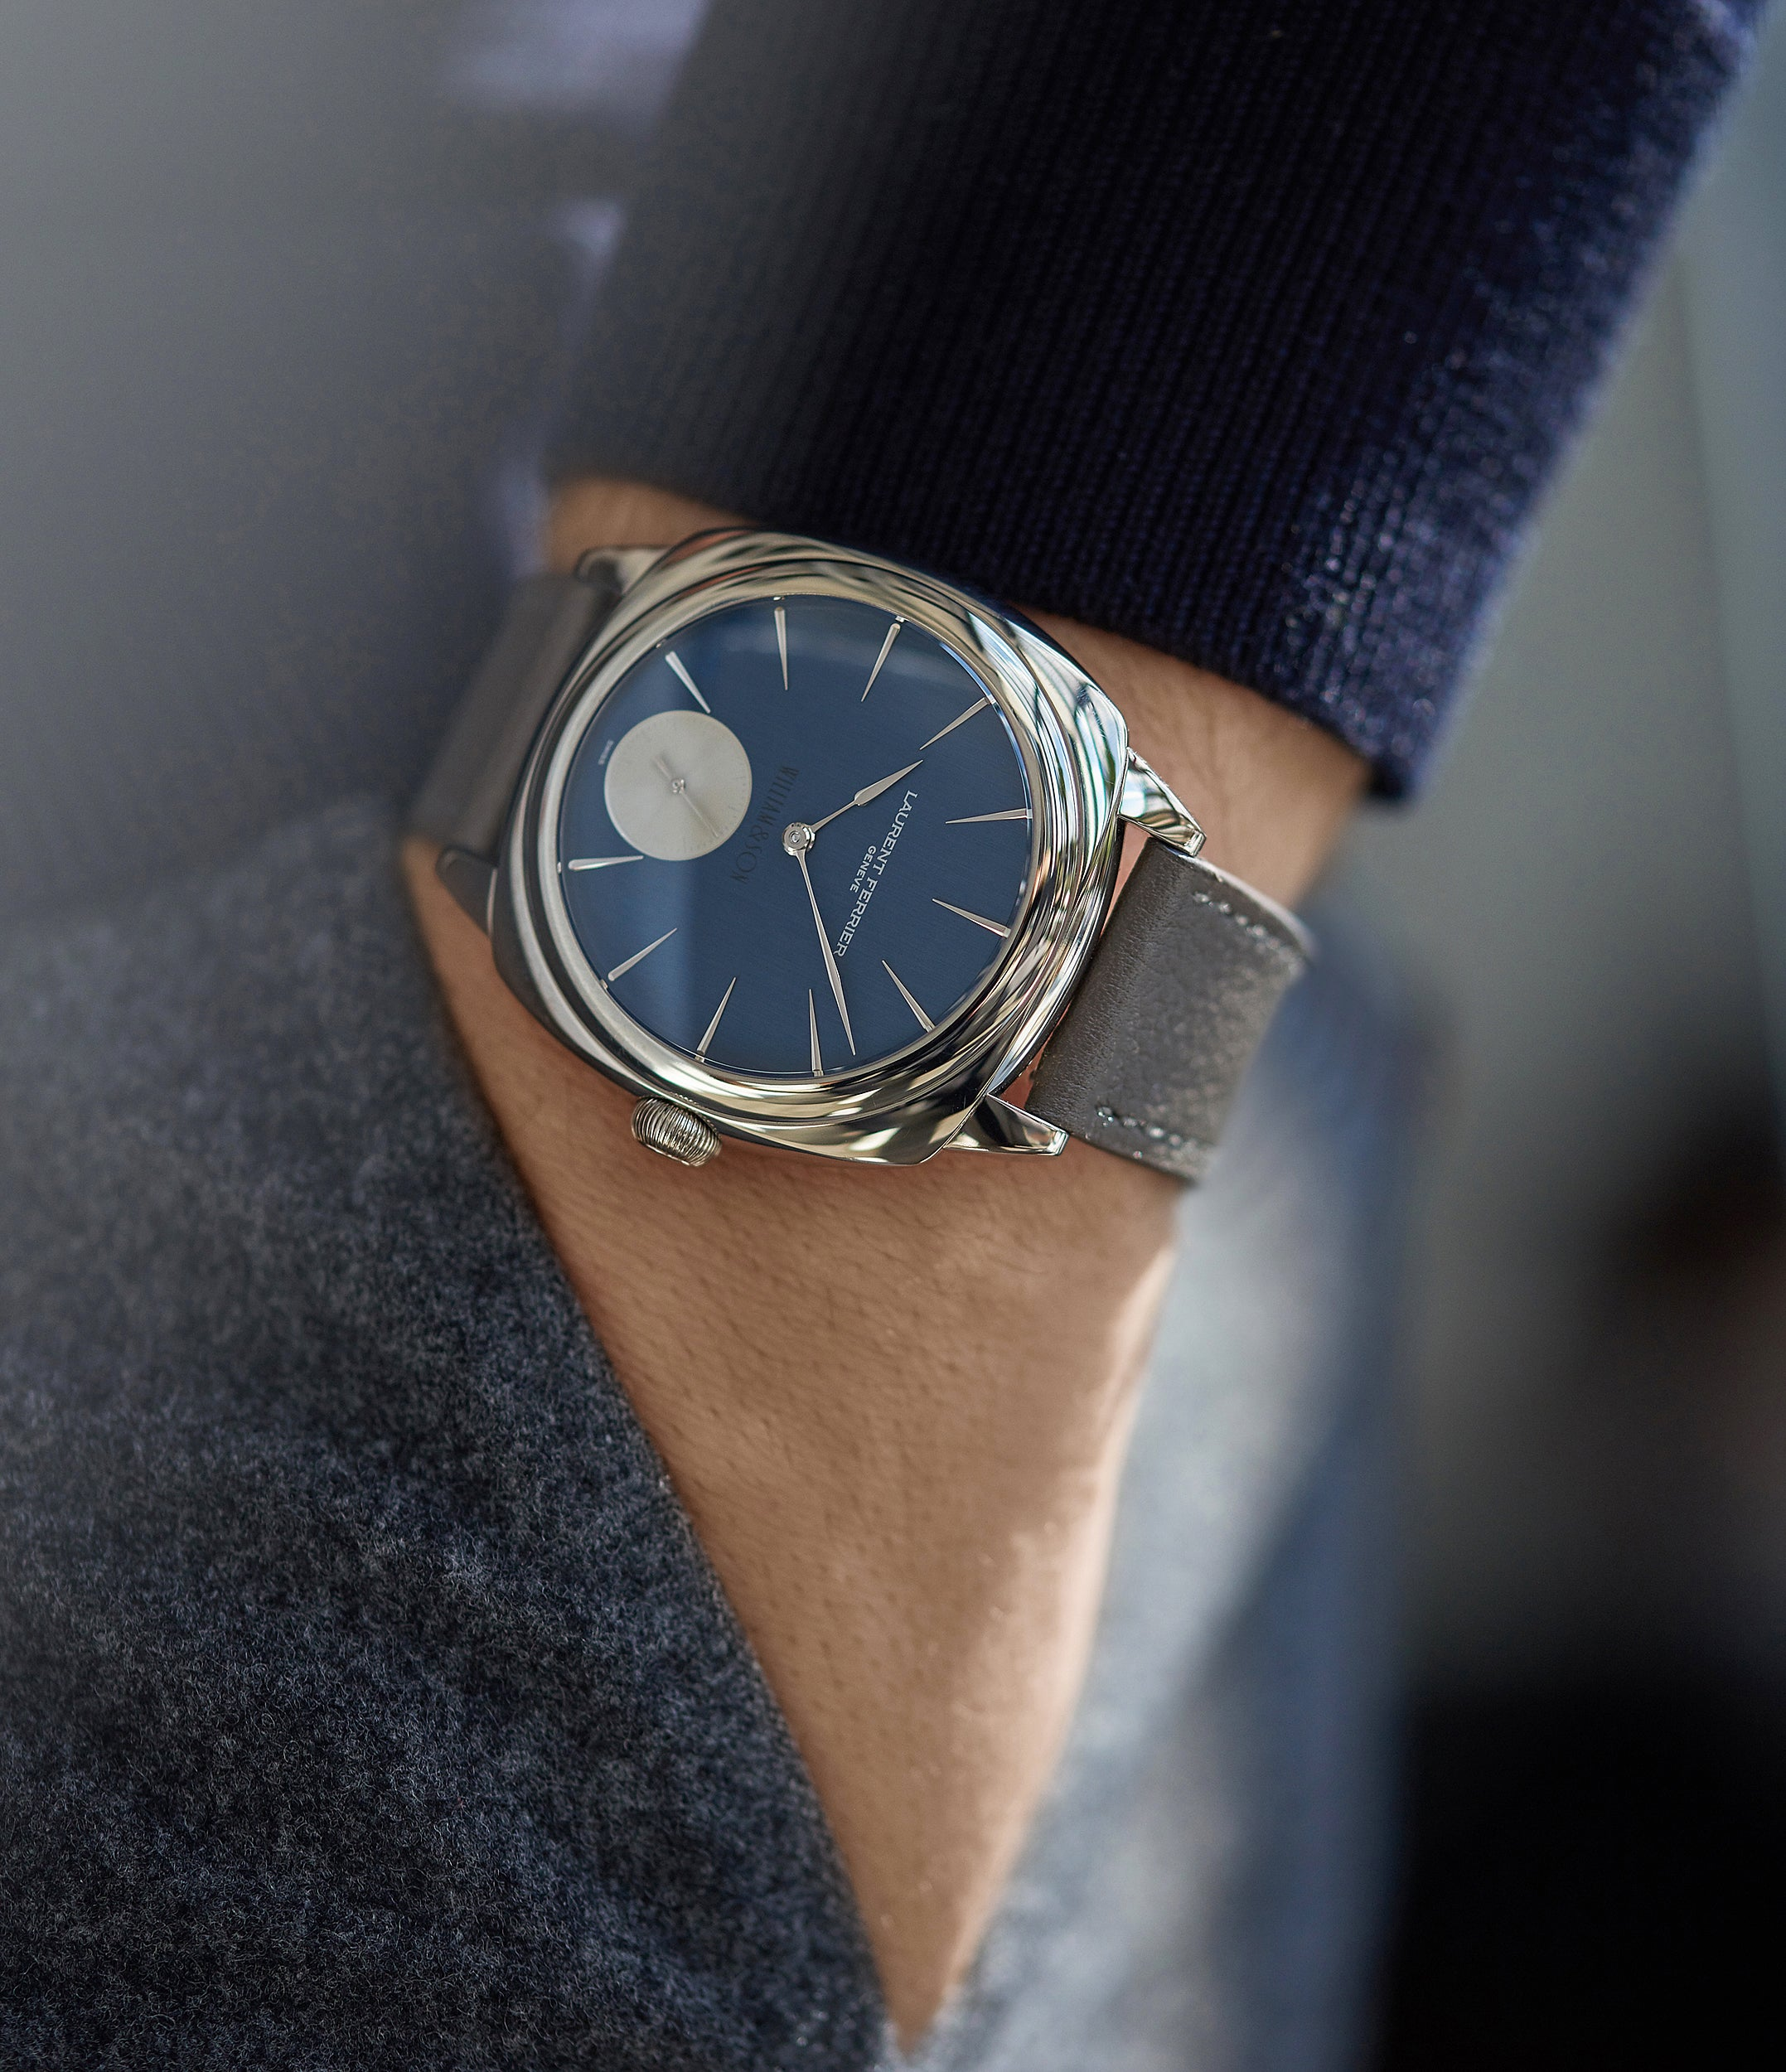 selling preowned Laurent Ferrier Micro Rotor LF 229.01 Galet Square William&Son blue dial white gold watch online at A Collected Man London approved seller of preowned independent watchmakers